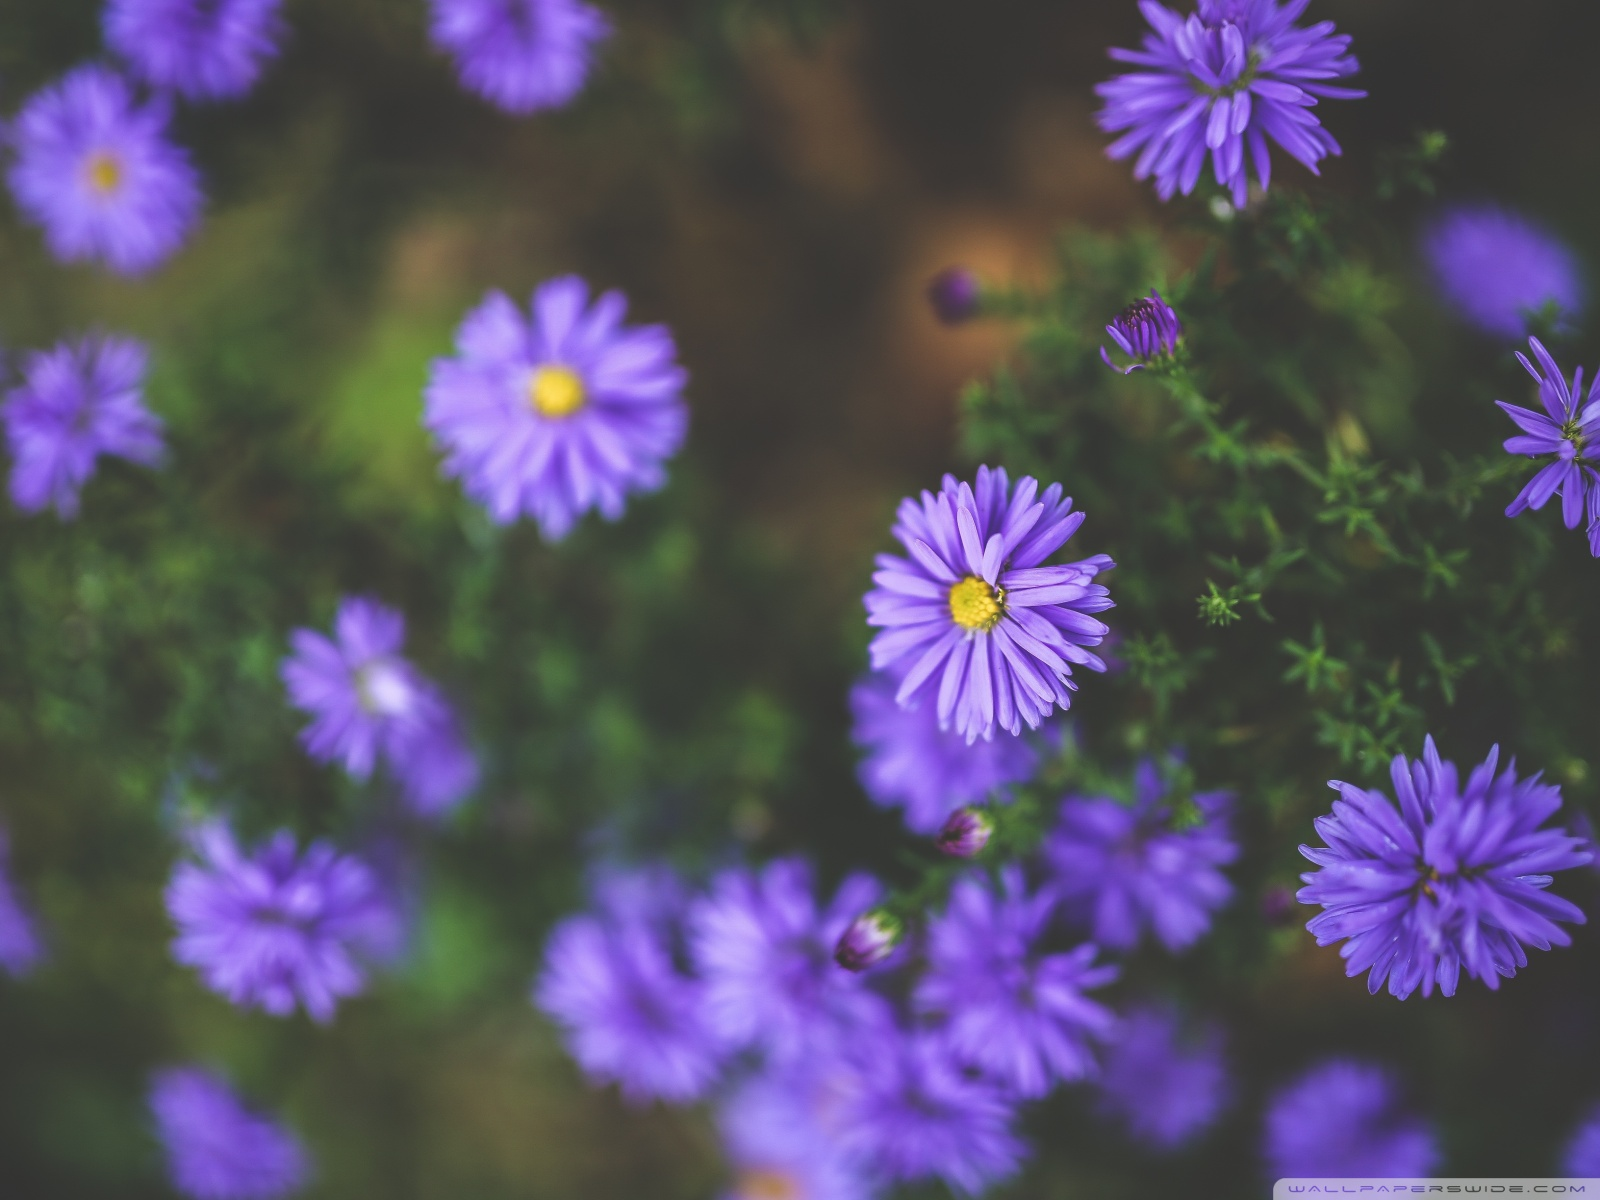 Free Violet Flowers phone wallpaper by bosshogg920